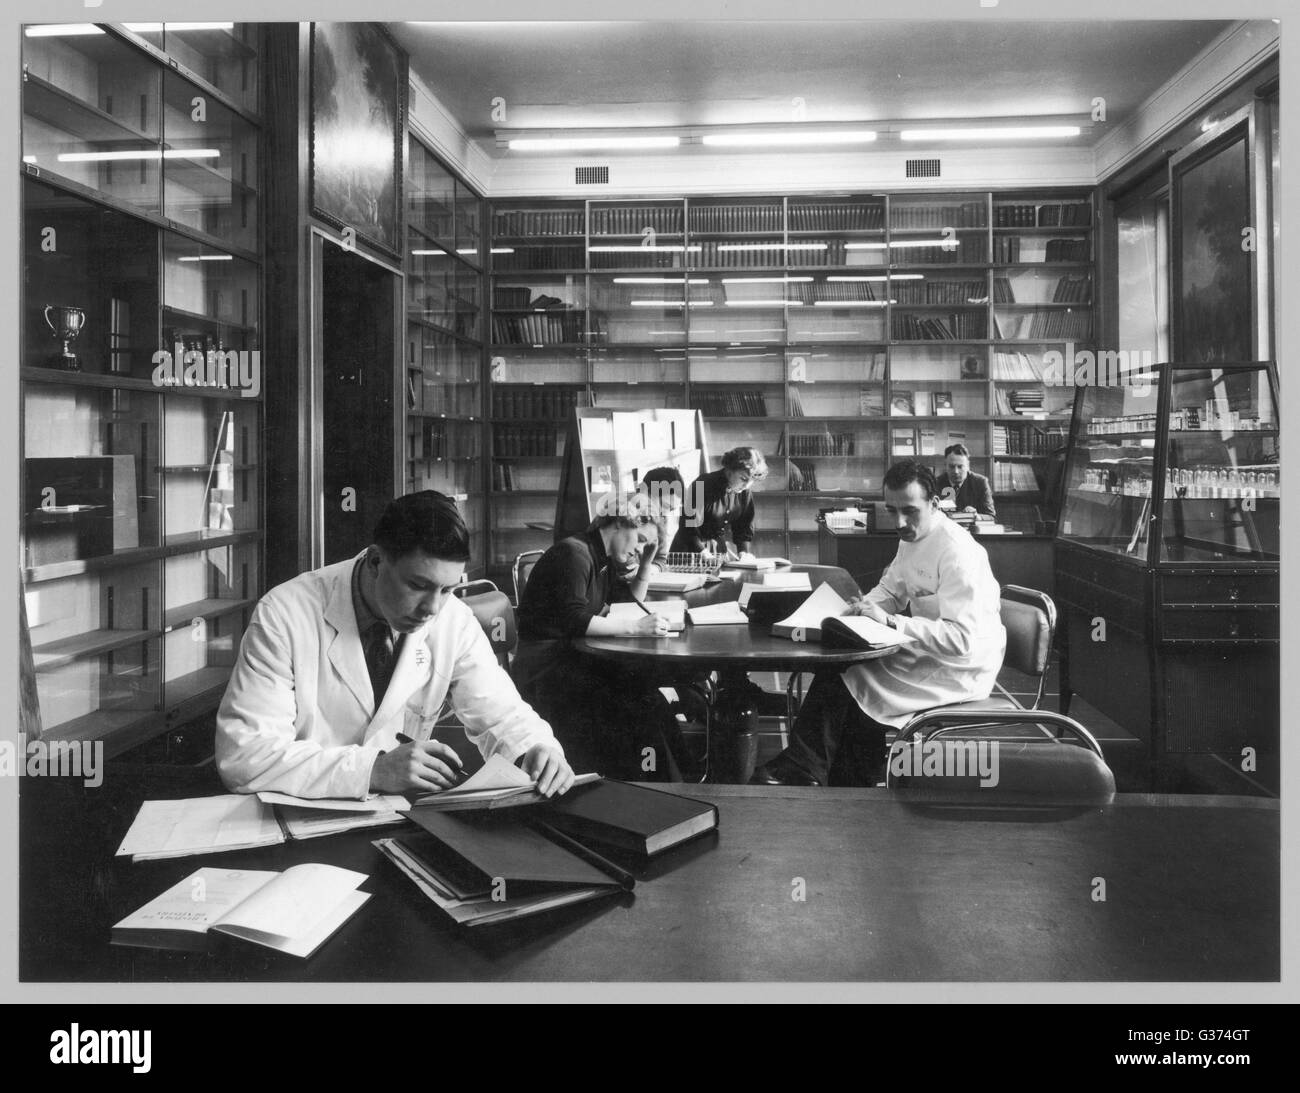 Students at Edinburgh  University, apparently  studying science, read and  make notes in a library      Date: 1950s - Stock Image